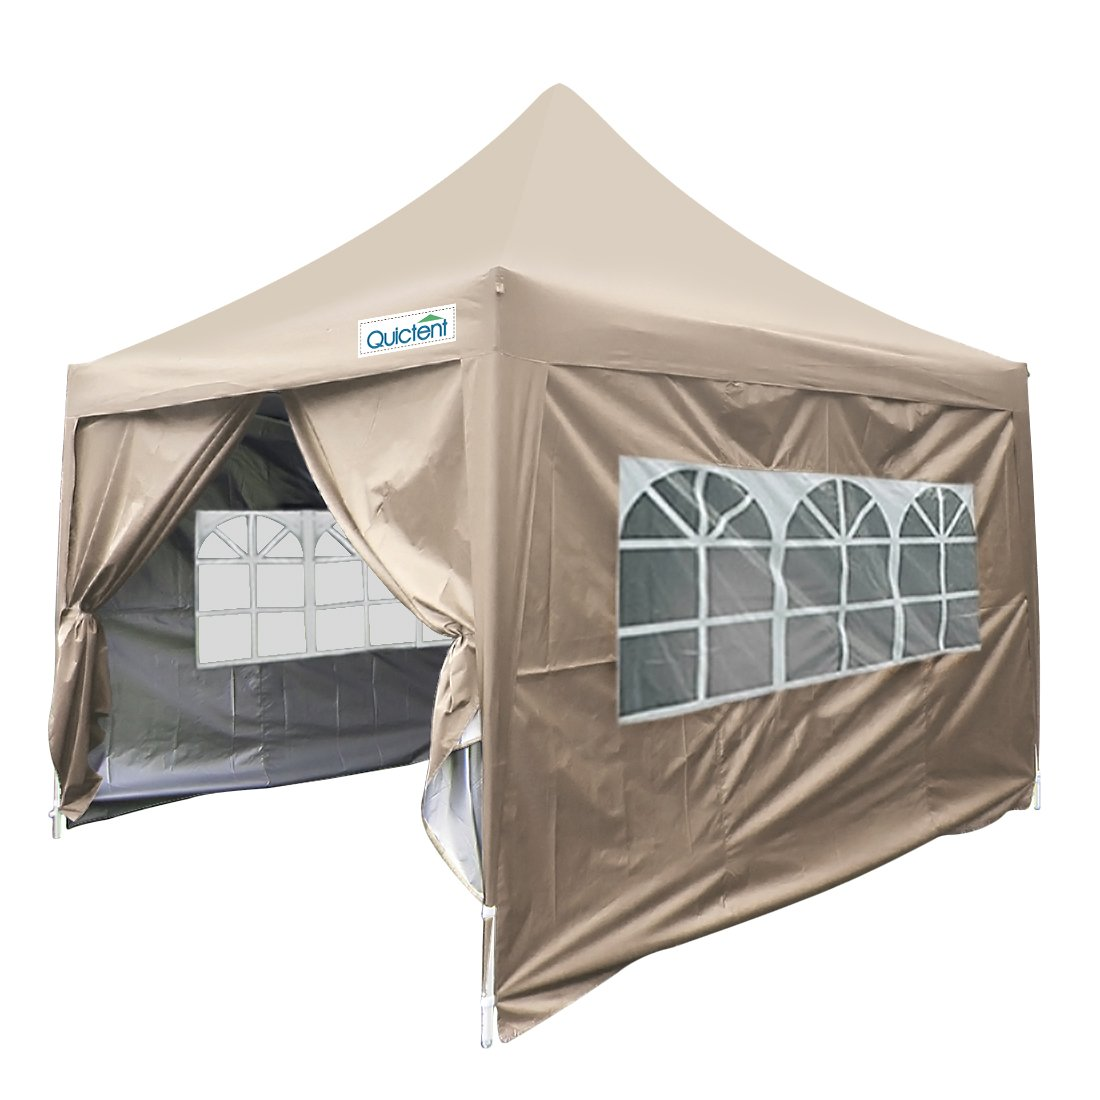 Quictent Silvox Waterproof 8x8' EZ Pop Up Canopy Gazebo Party Tent Portable Pyramid-roofed Waterproof-7 colors(Beige) by Quictent (Image #1)